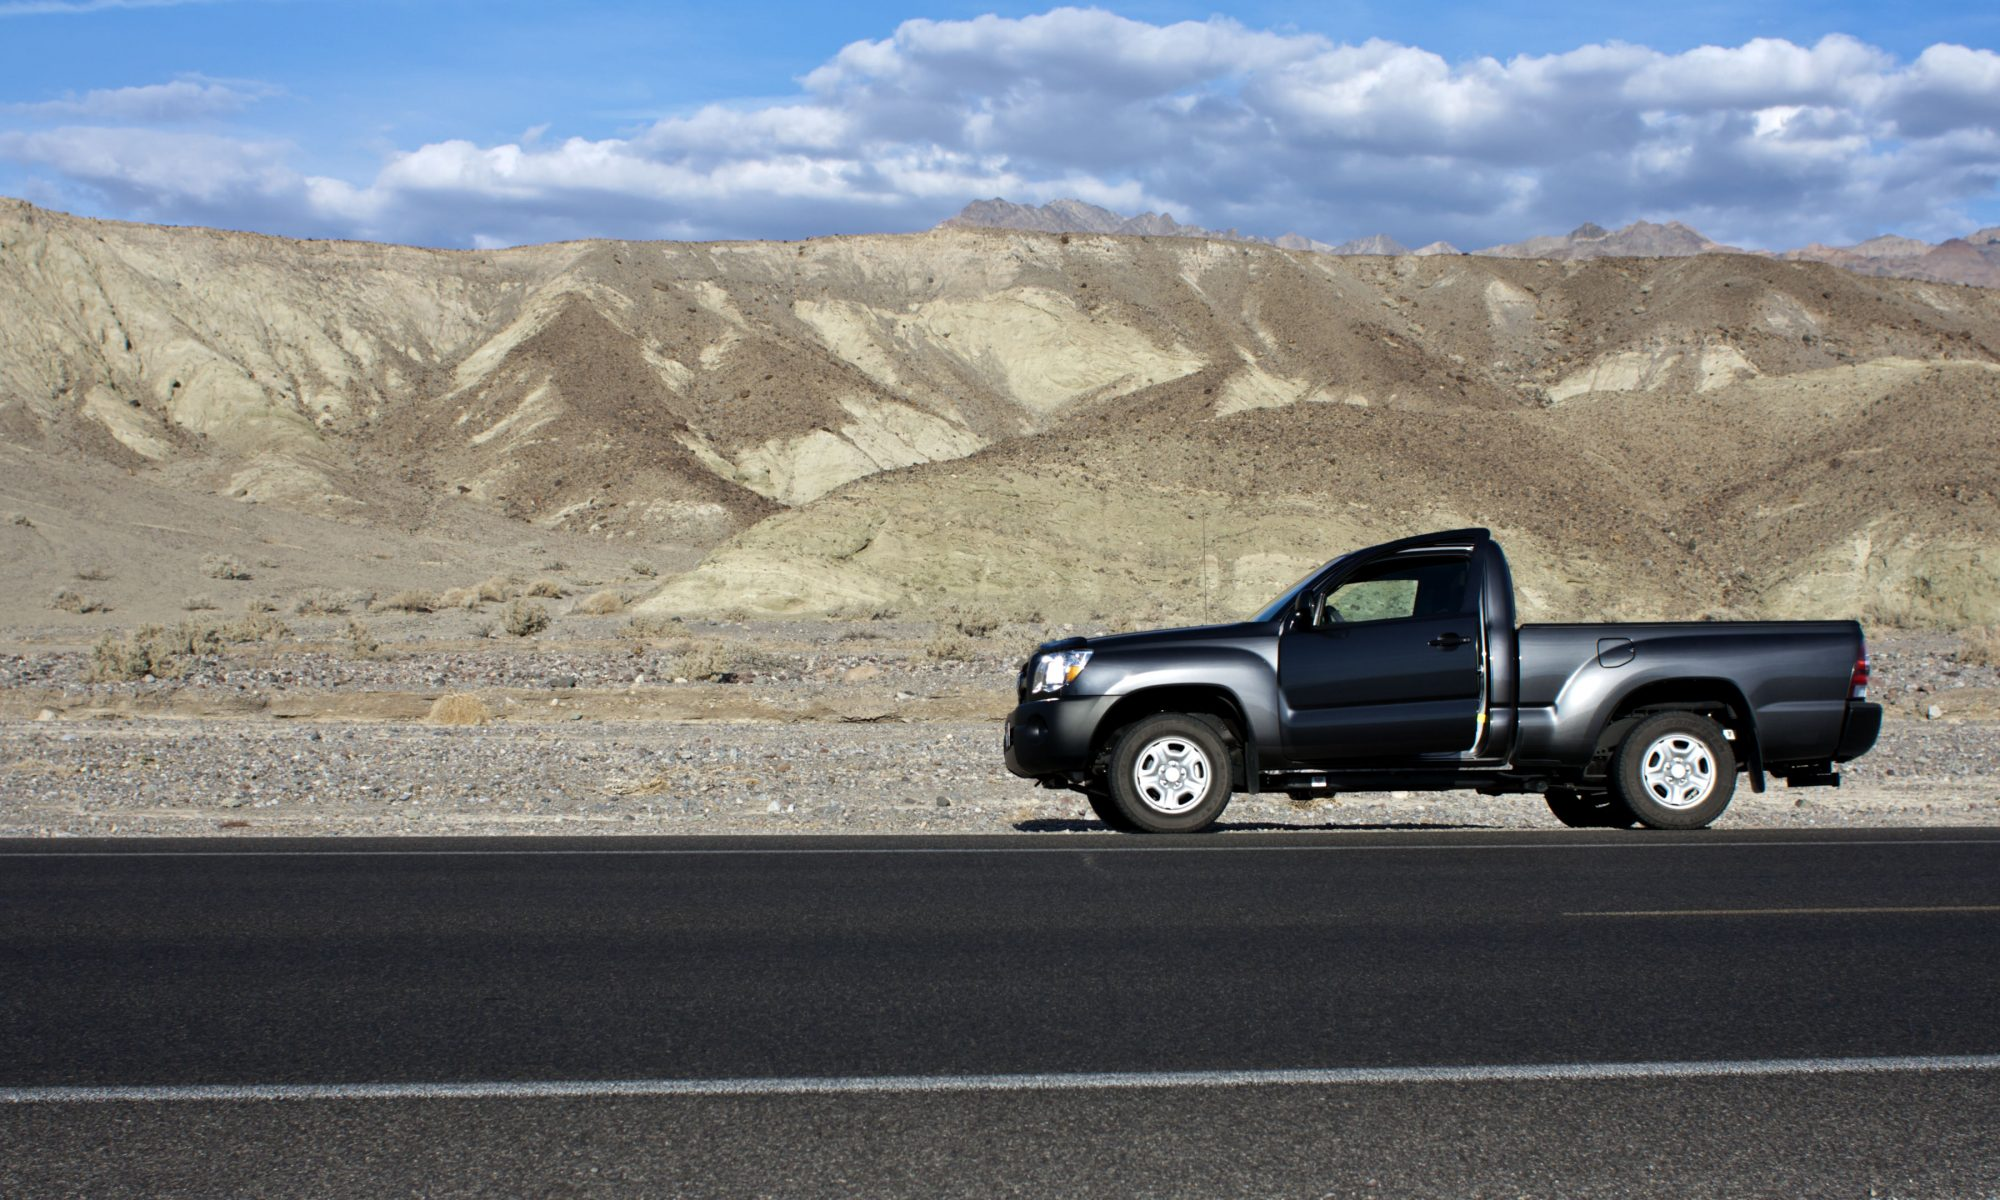 Toyota Tacoma on the Greenwater Valley Road in Death Valley